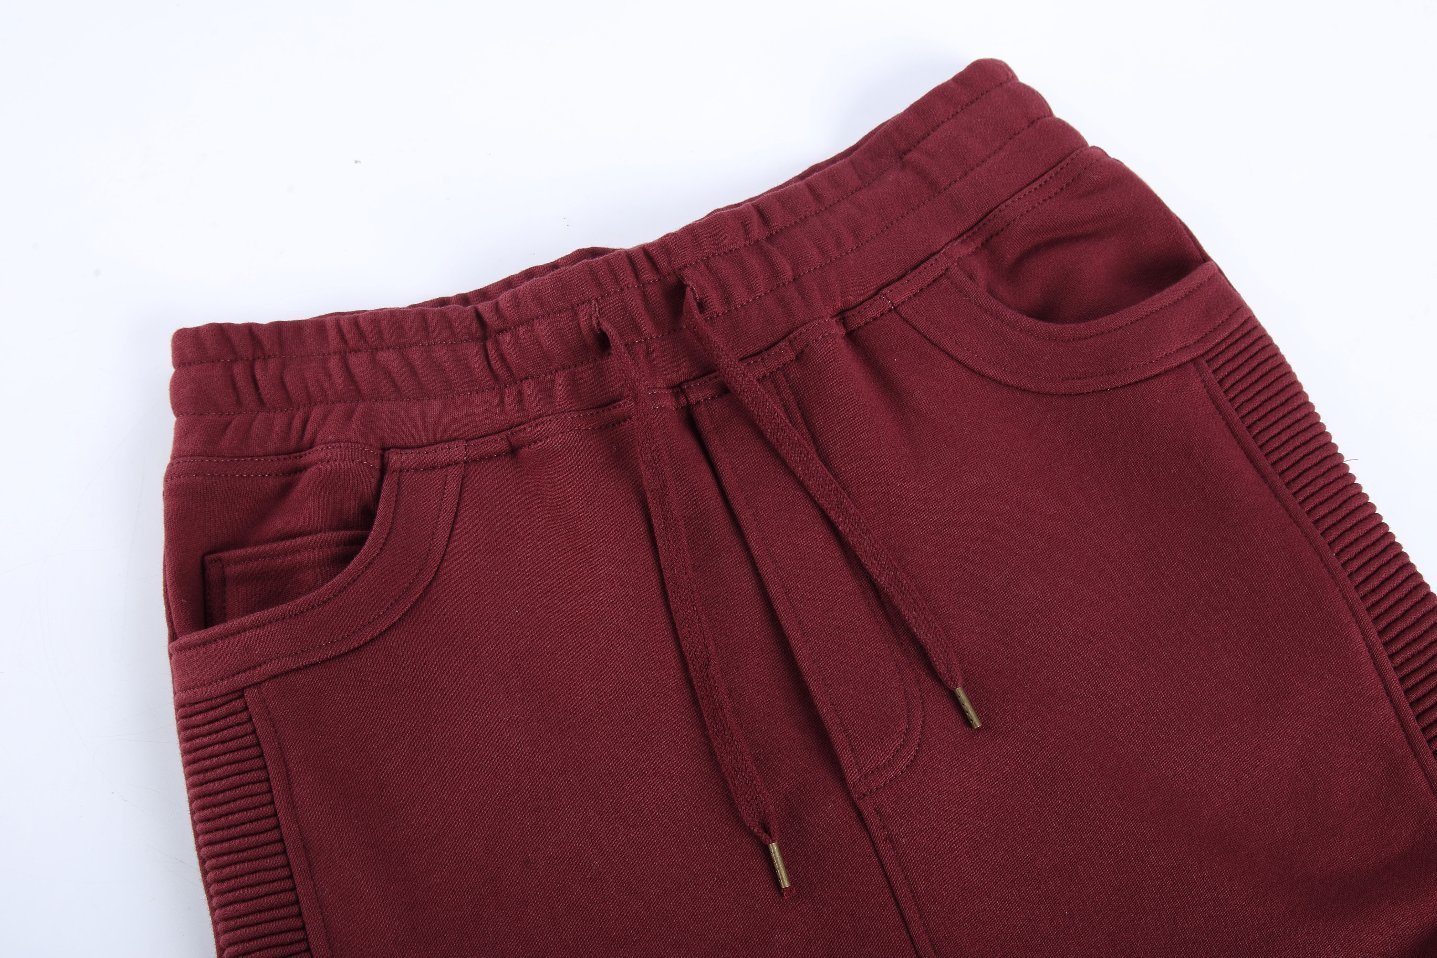 Cotton Terry Spring /Autumn Men Pants